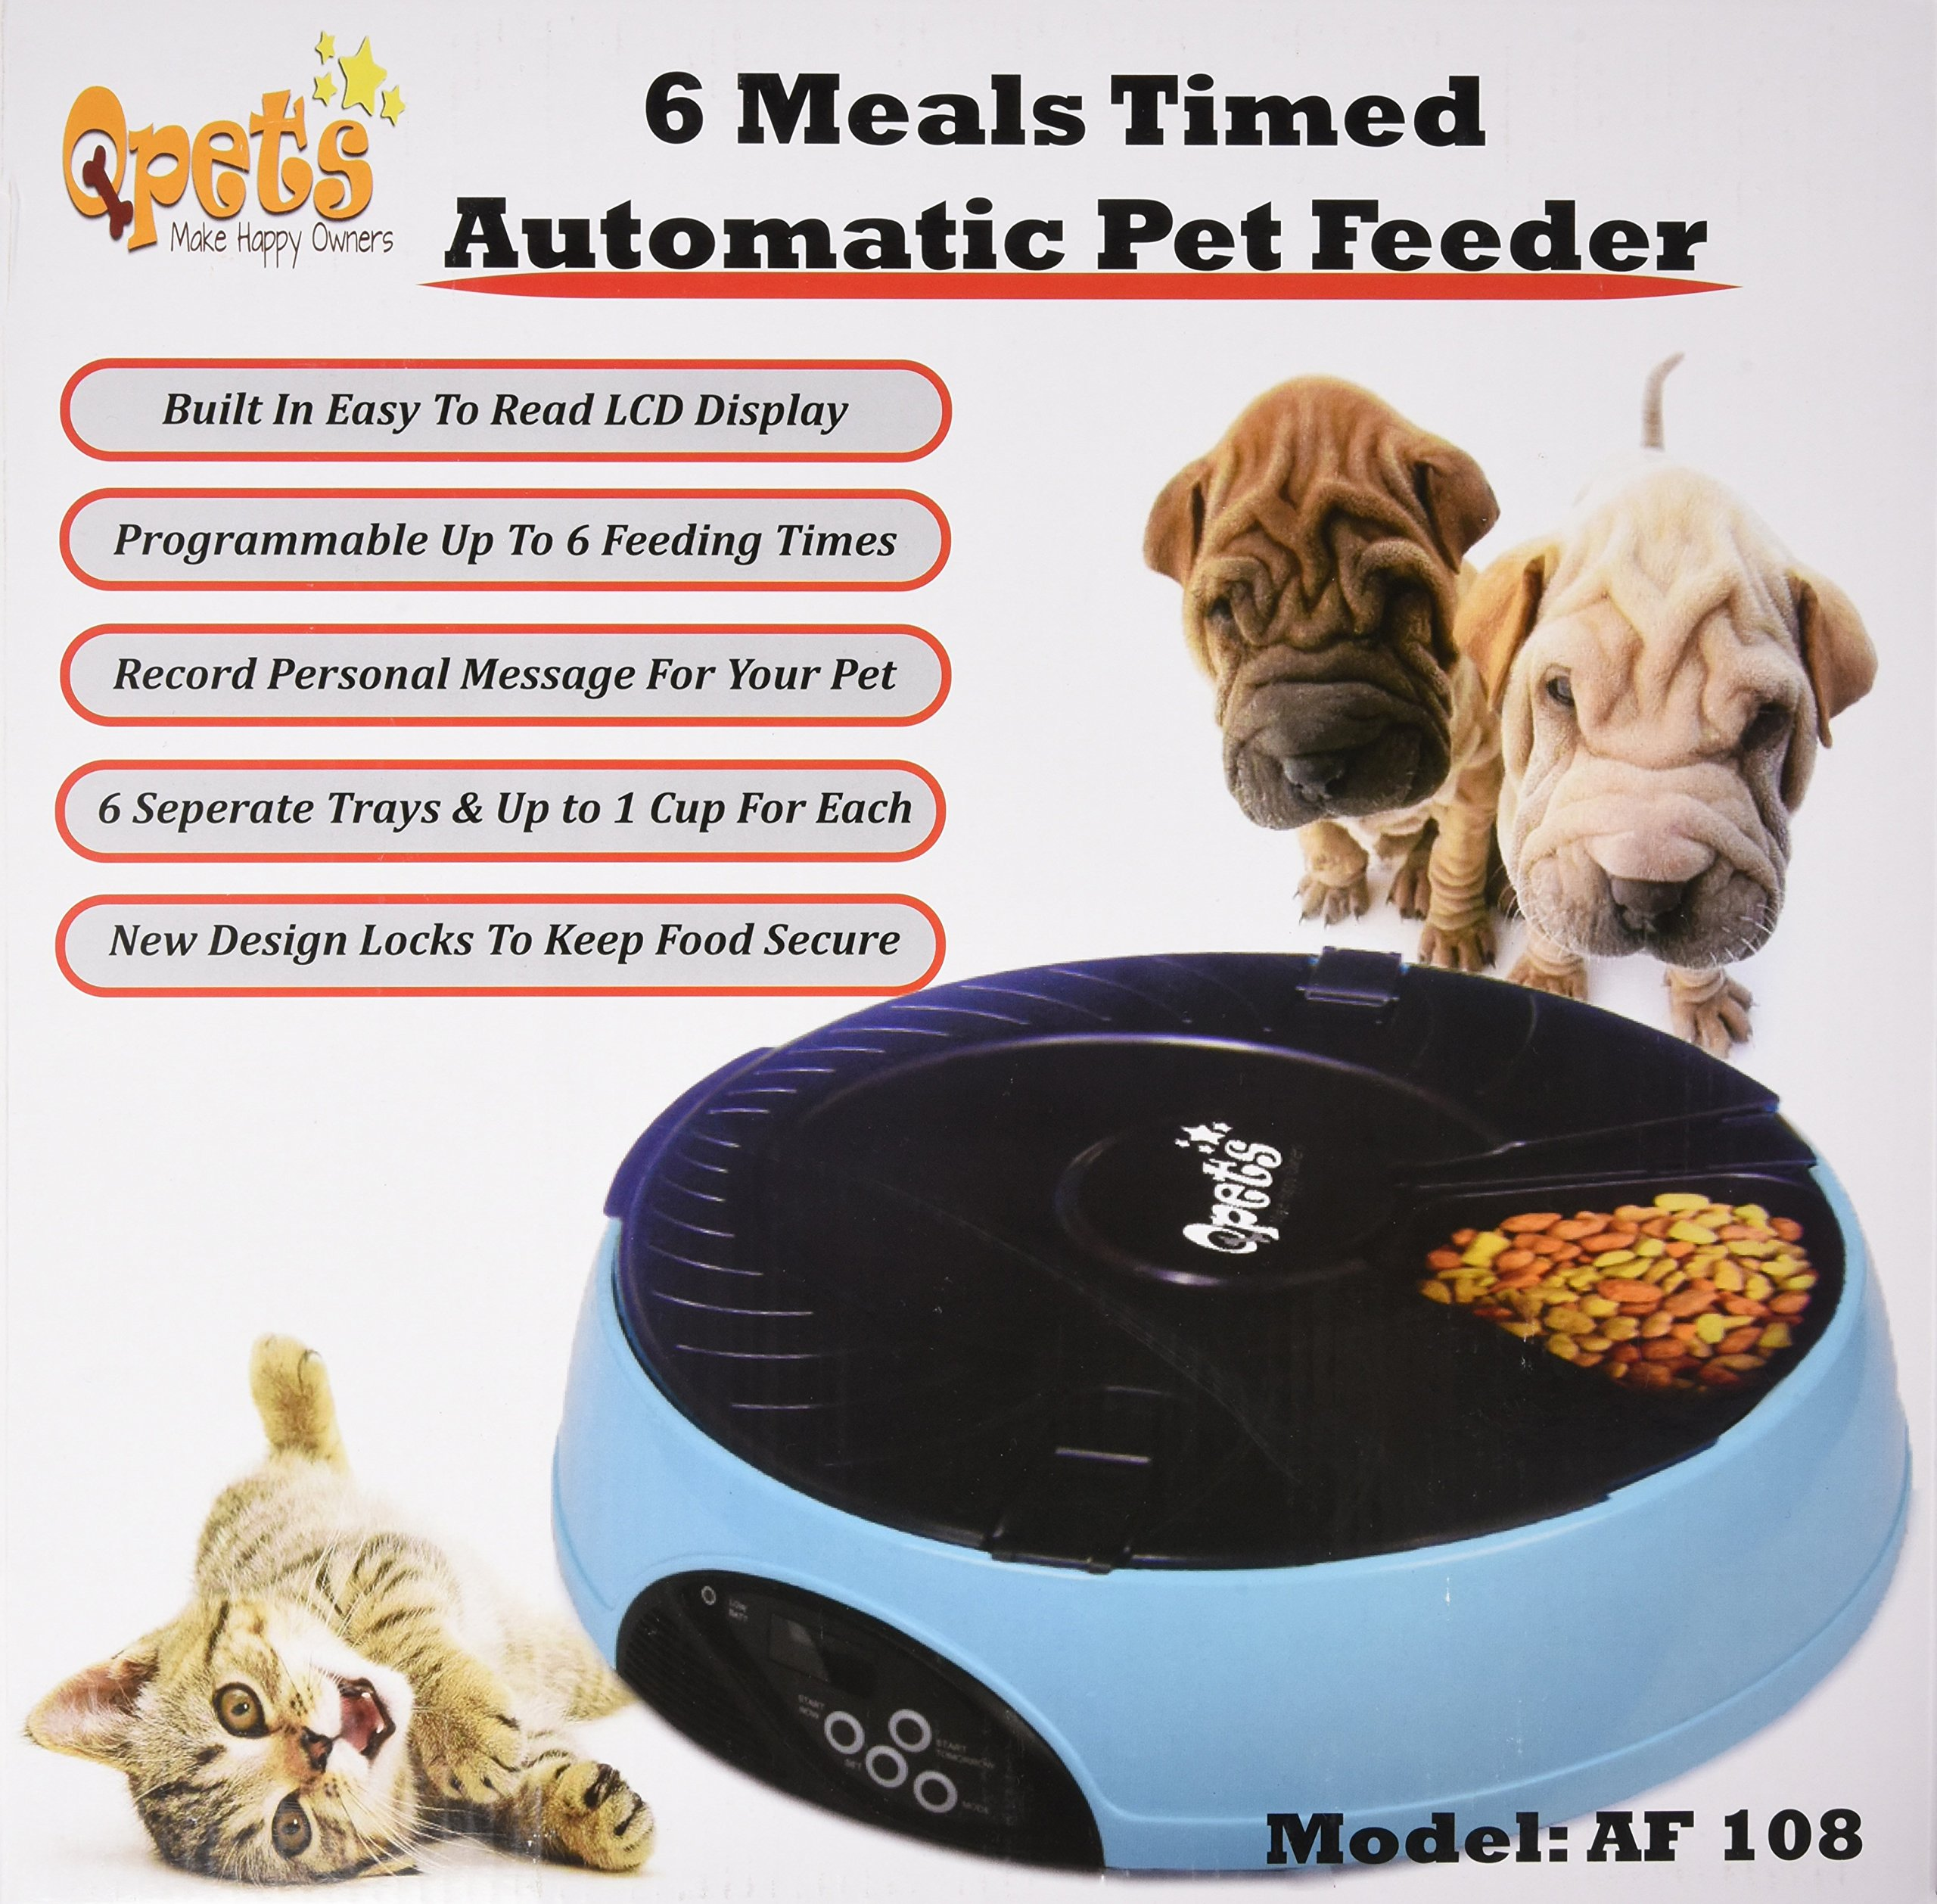 wet small pet ip van feeder com food ness auto may vary color walmart timed